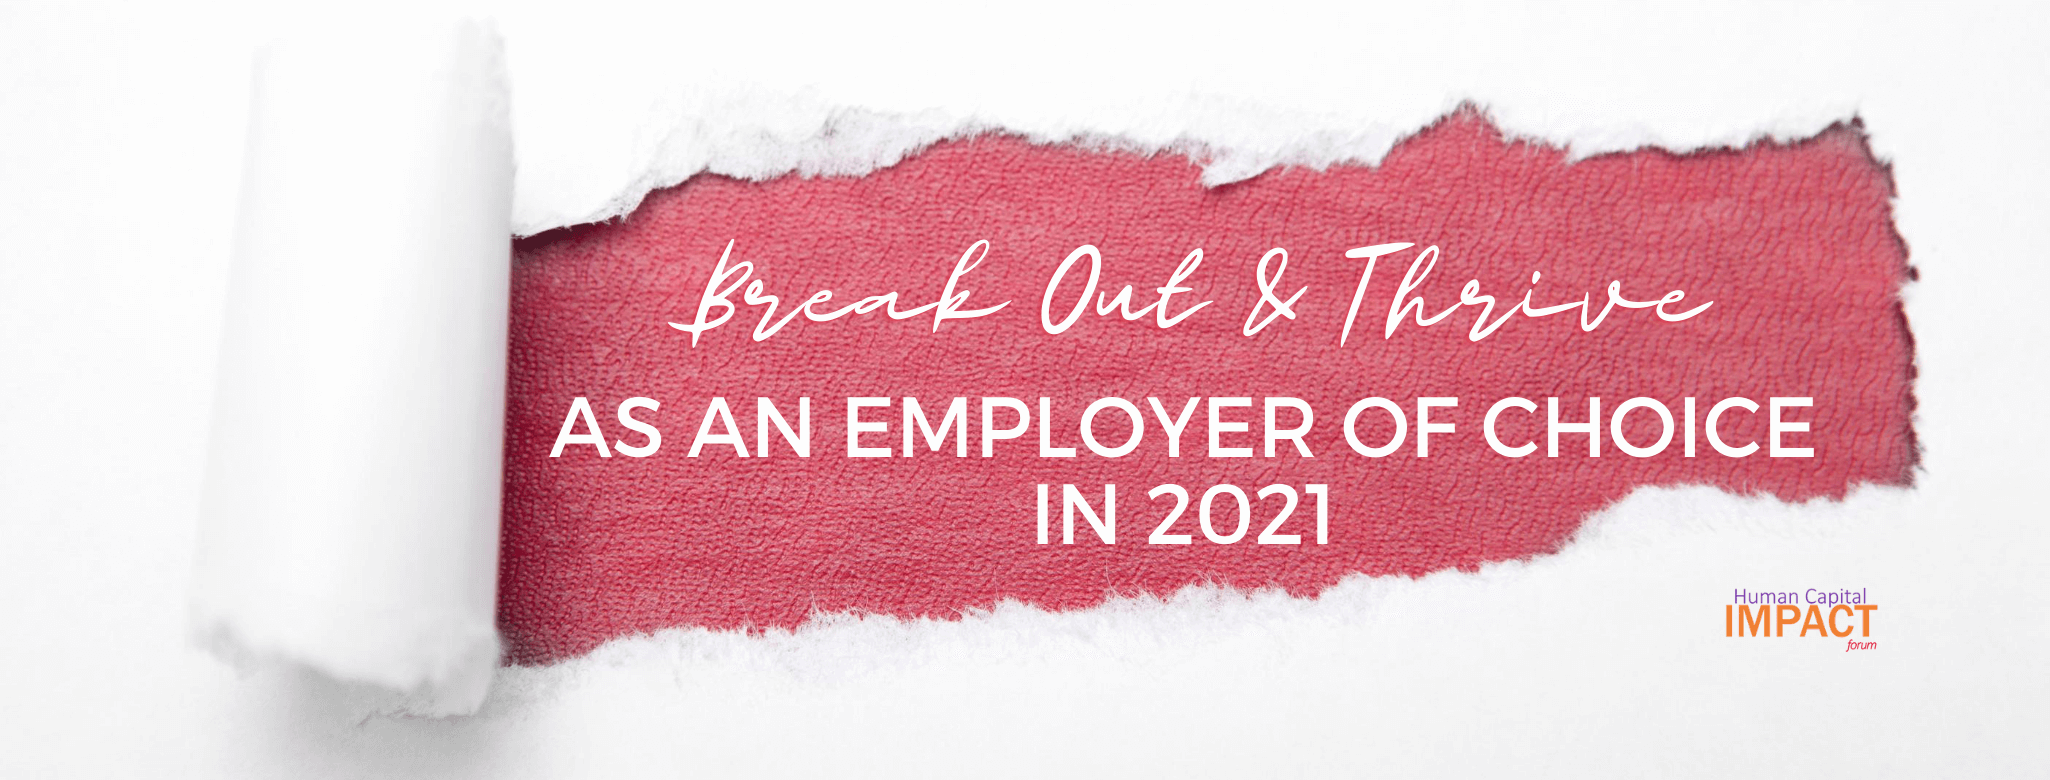 Break Out & Thrive as an Employer of Choice in 2021: Recap + Takeaways